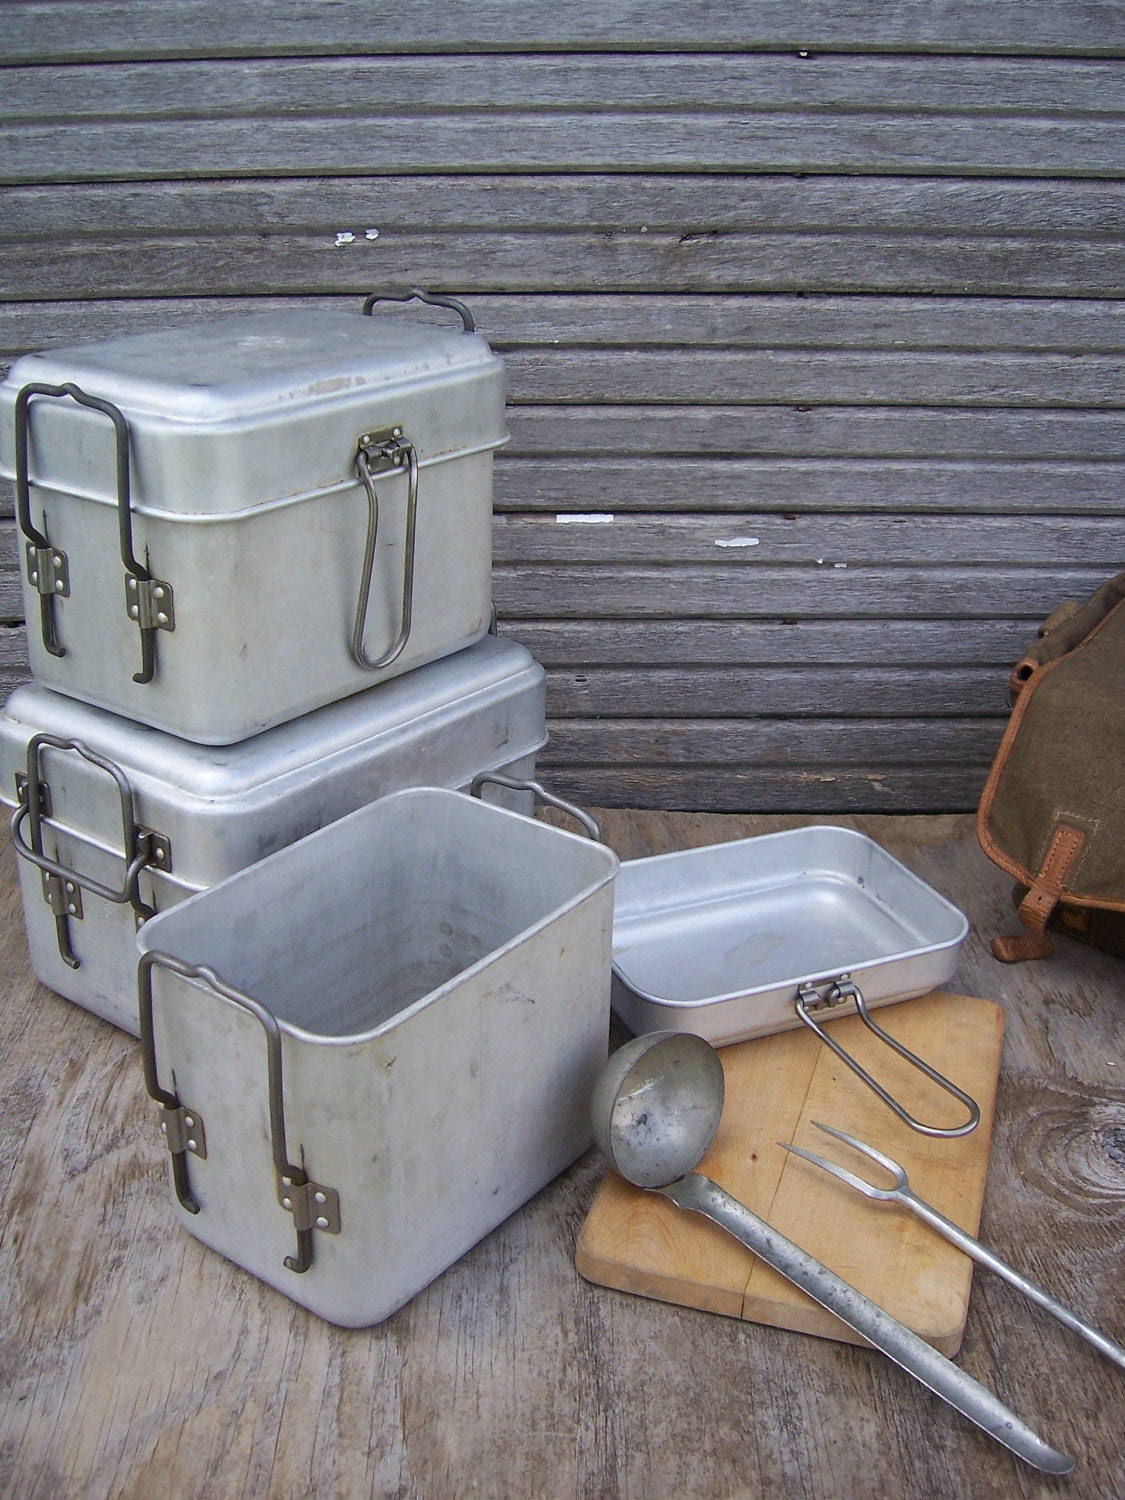 Vintage czech field kitchen set camping mess kit wwii for Kitchen set vintage